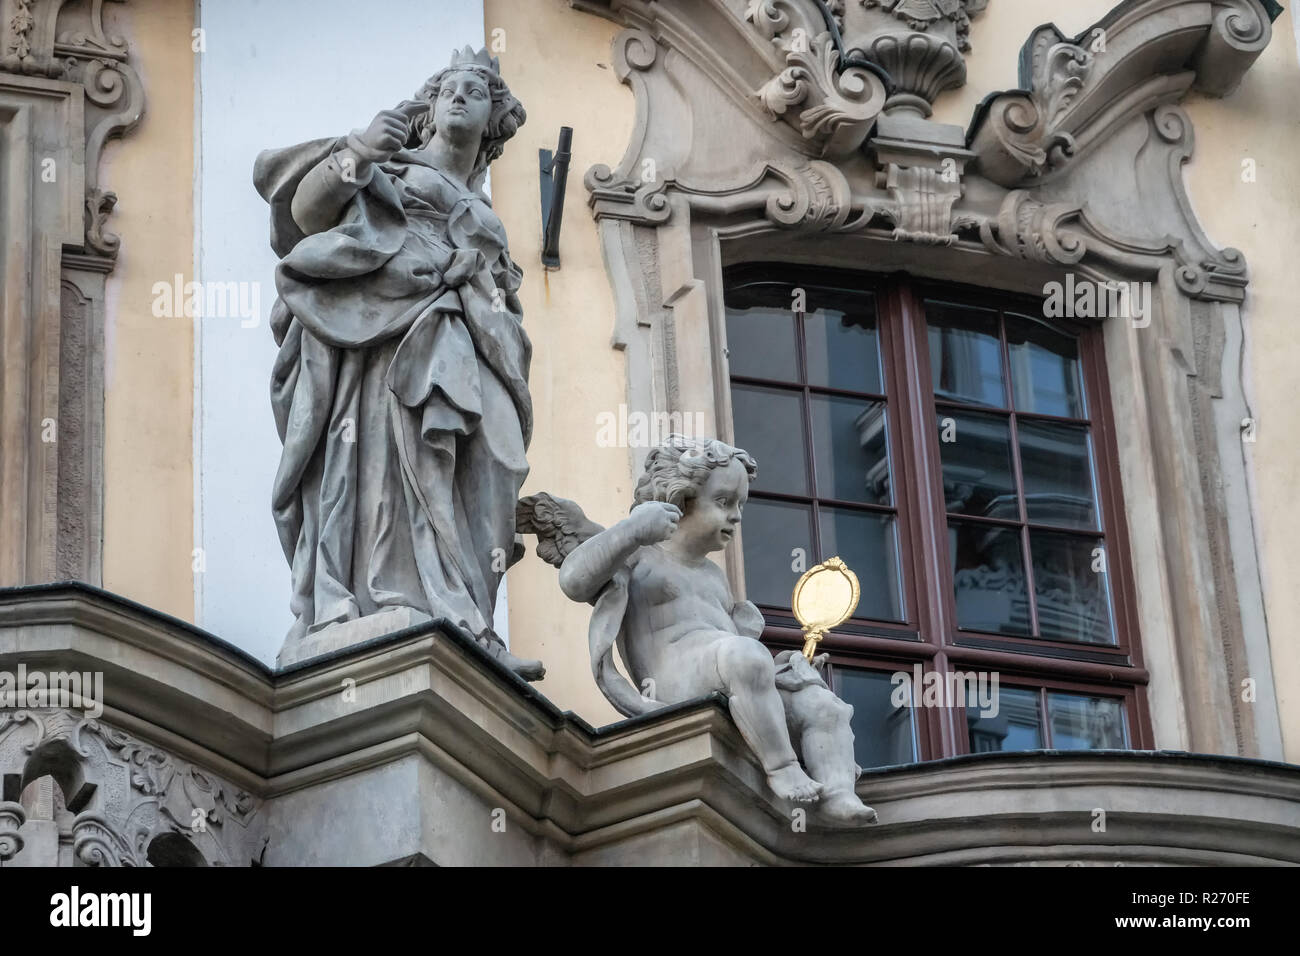 Detail on the old university in Wroclaw, Poland Stock Photo